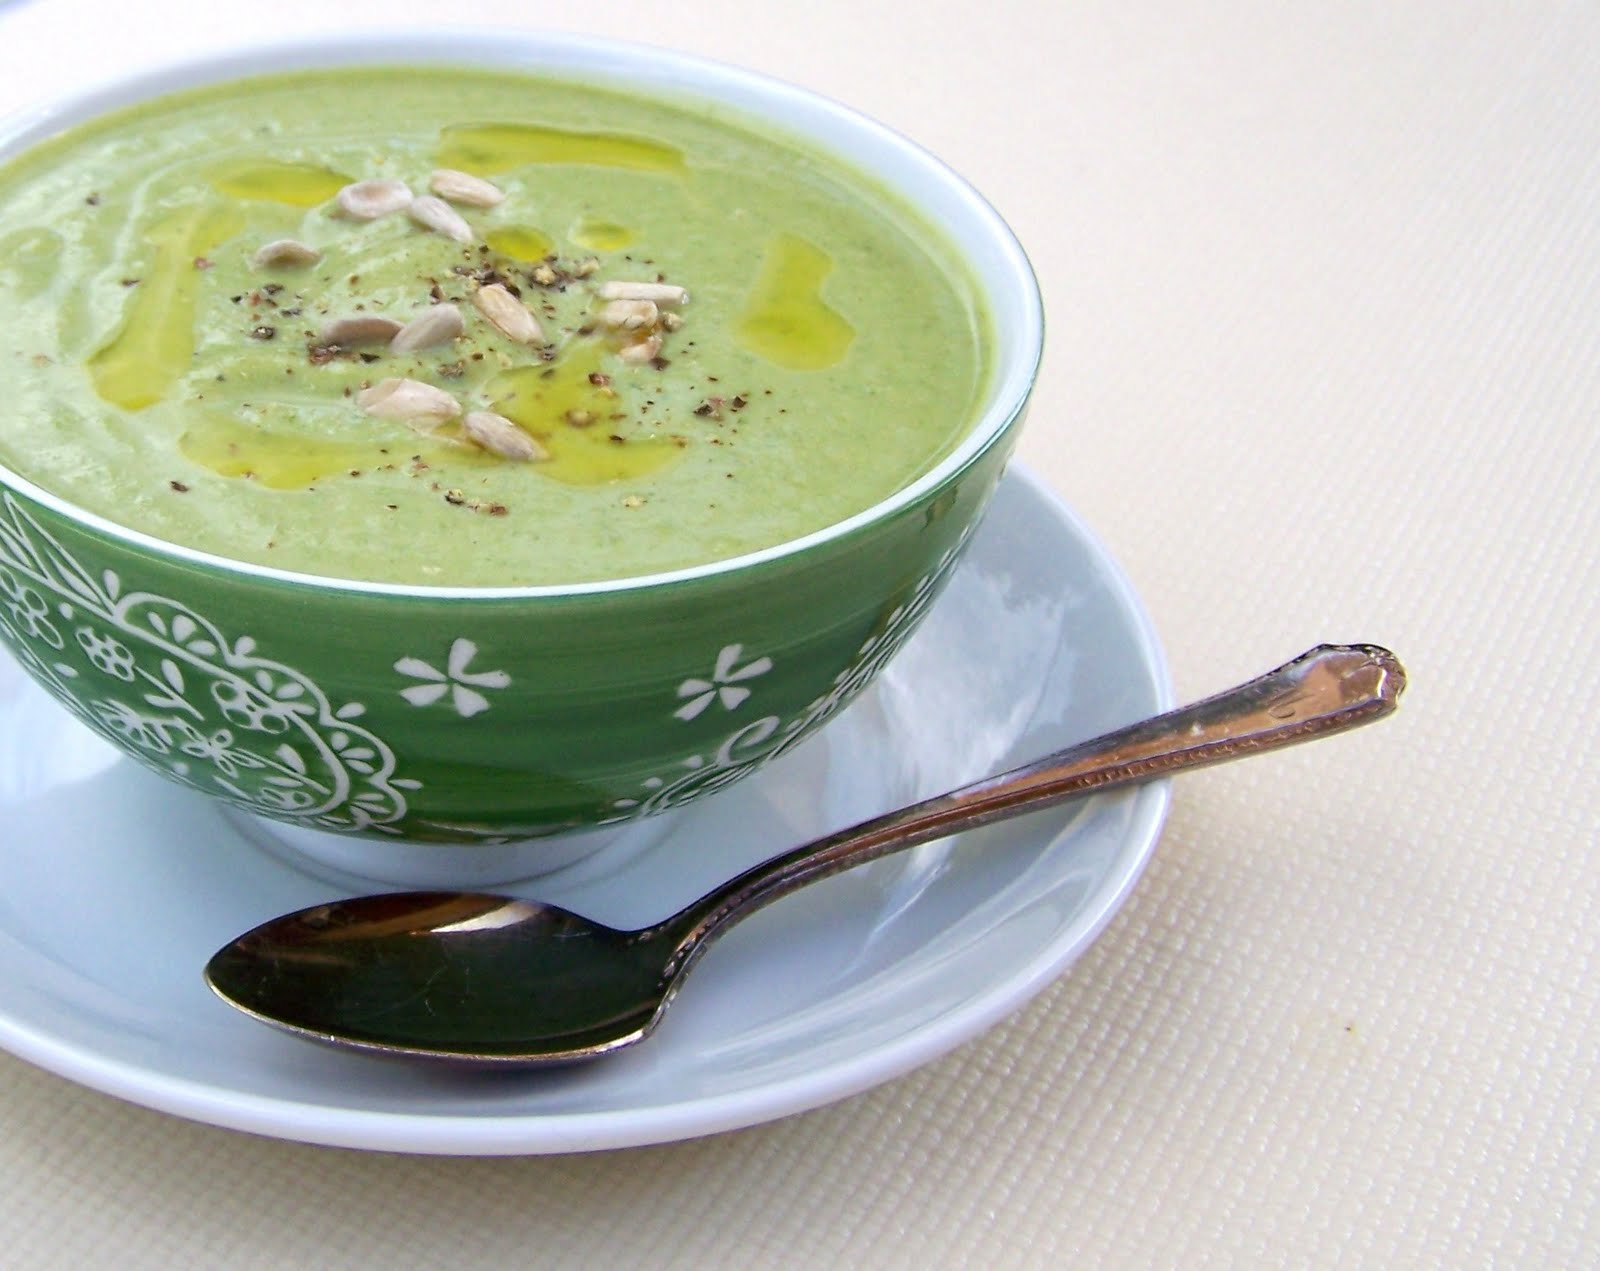 ... Healthy Kitchen: Creamy Broccoli and Spinach Soup with Coconut Milk